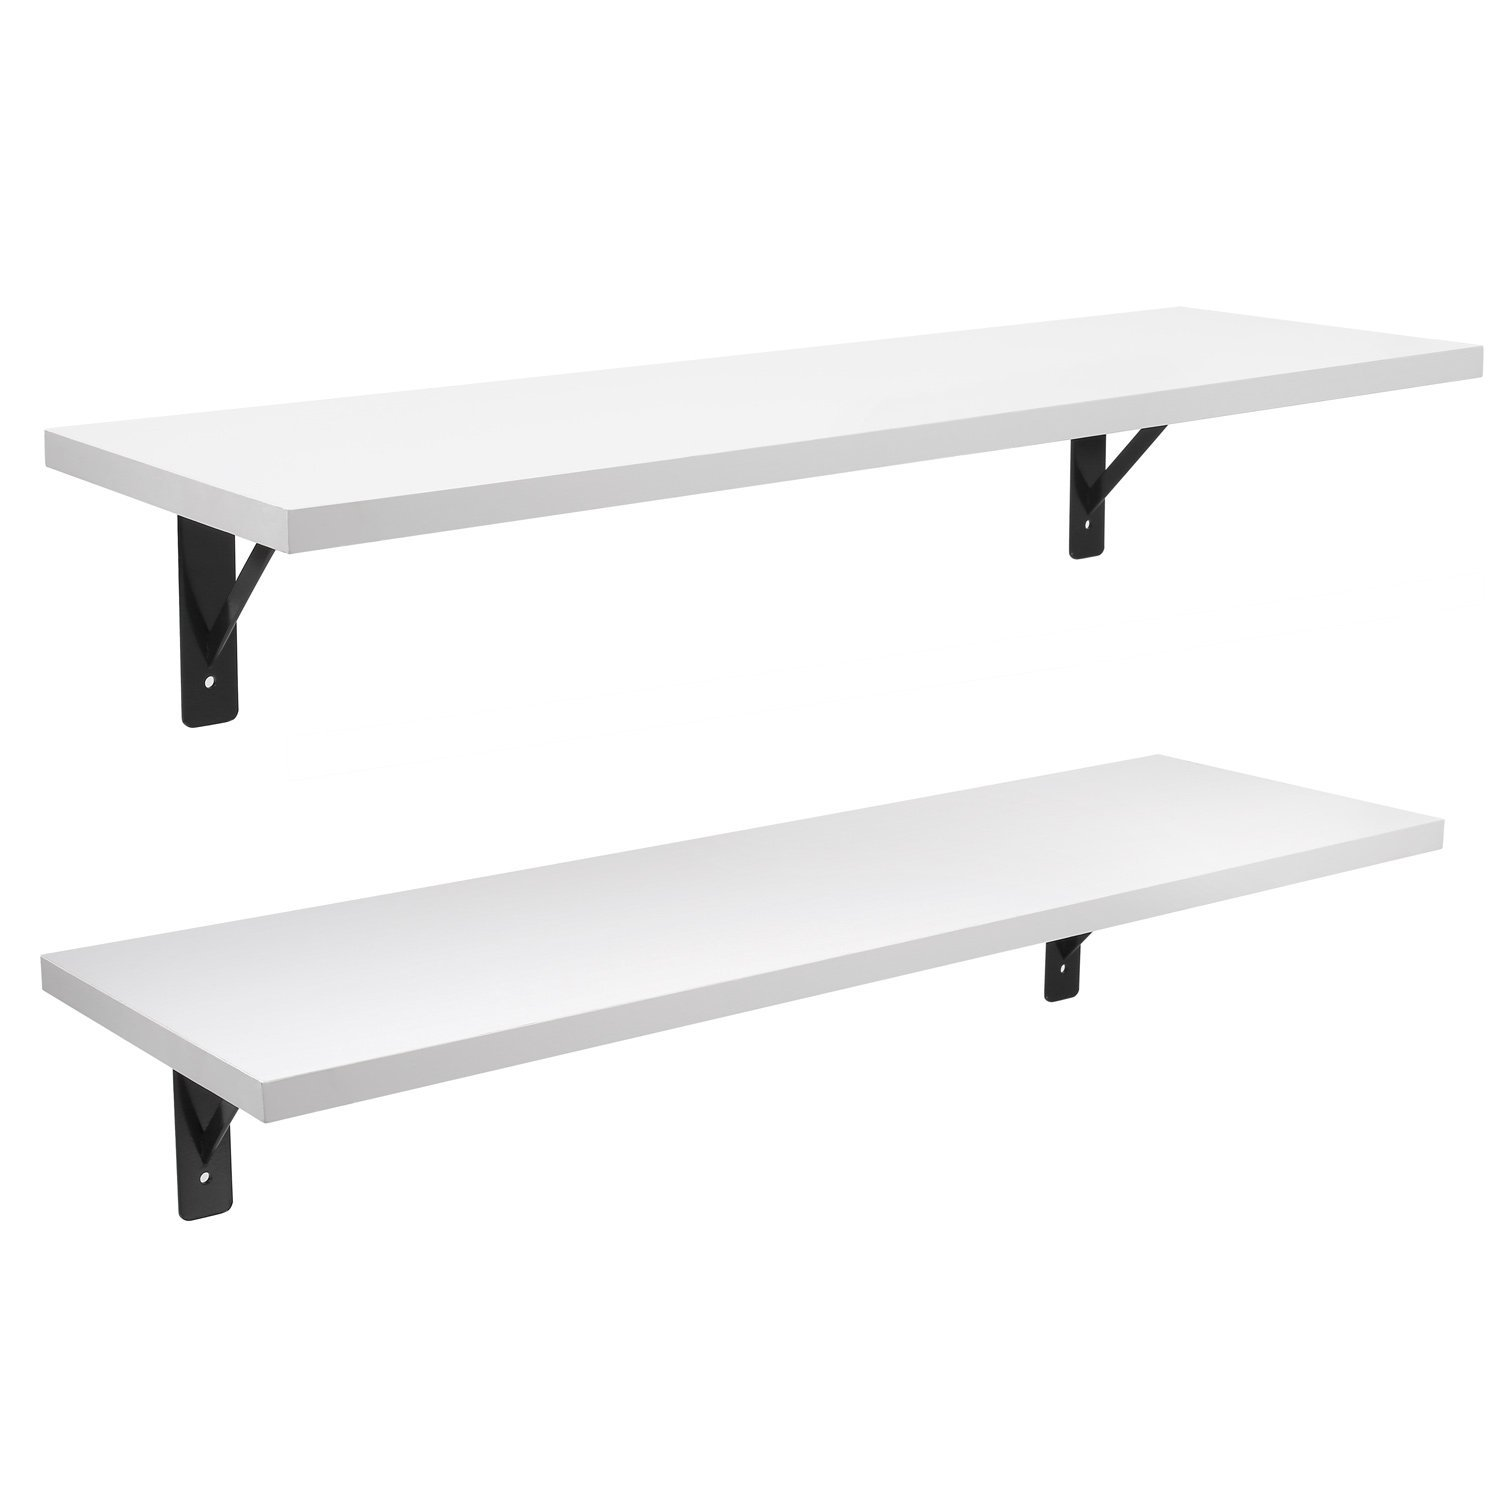 2 Display Ledge Shelf Floating Shelves Wall Mounted With